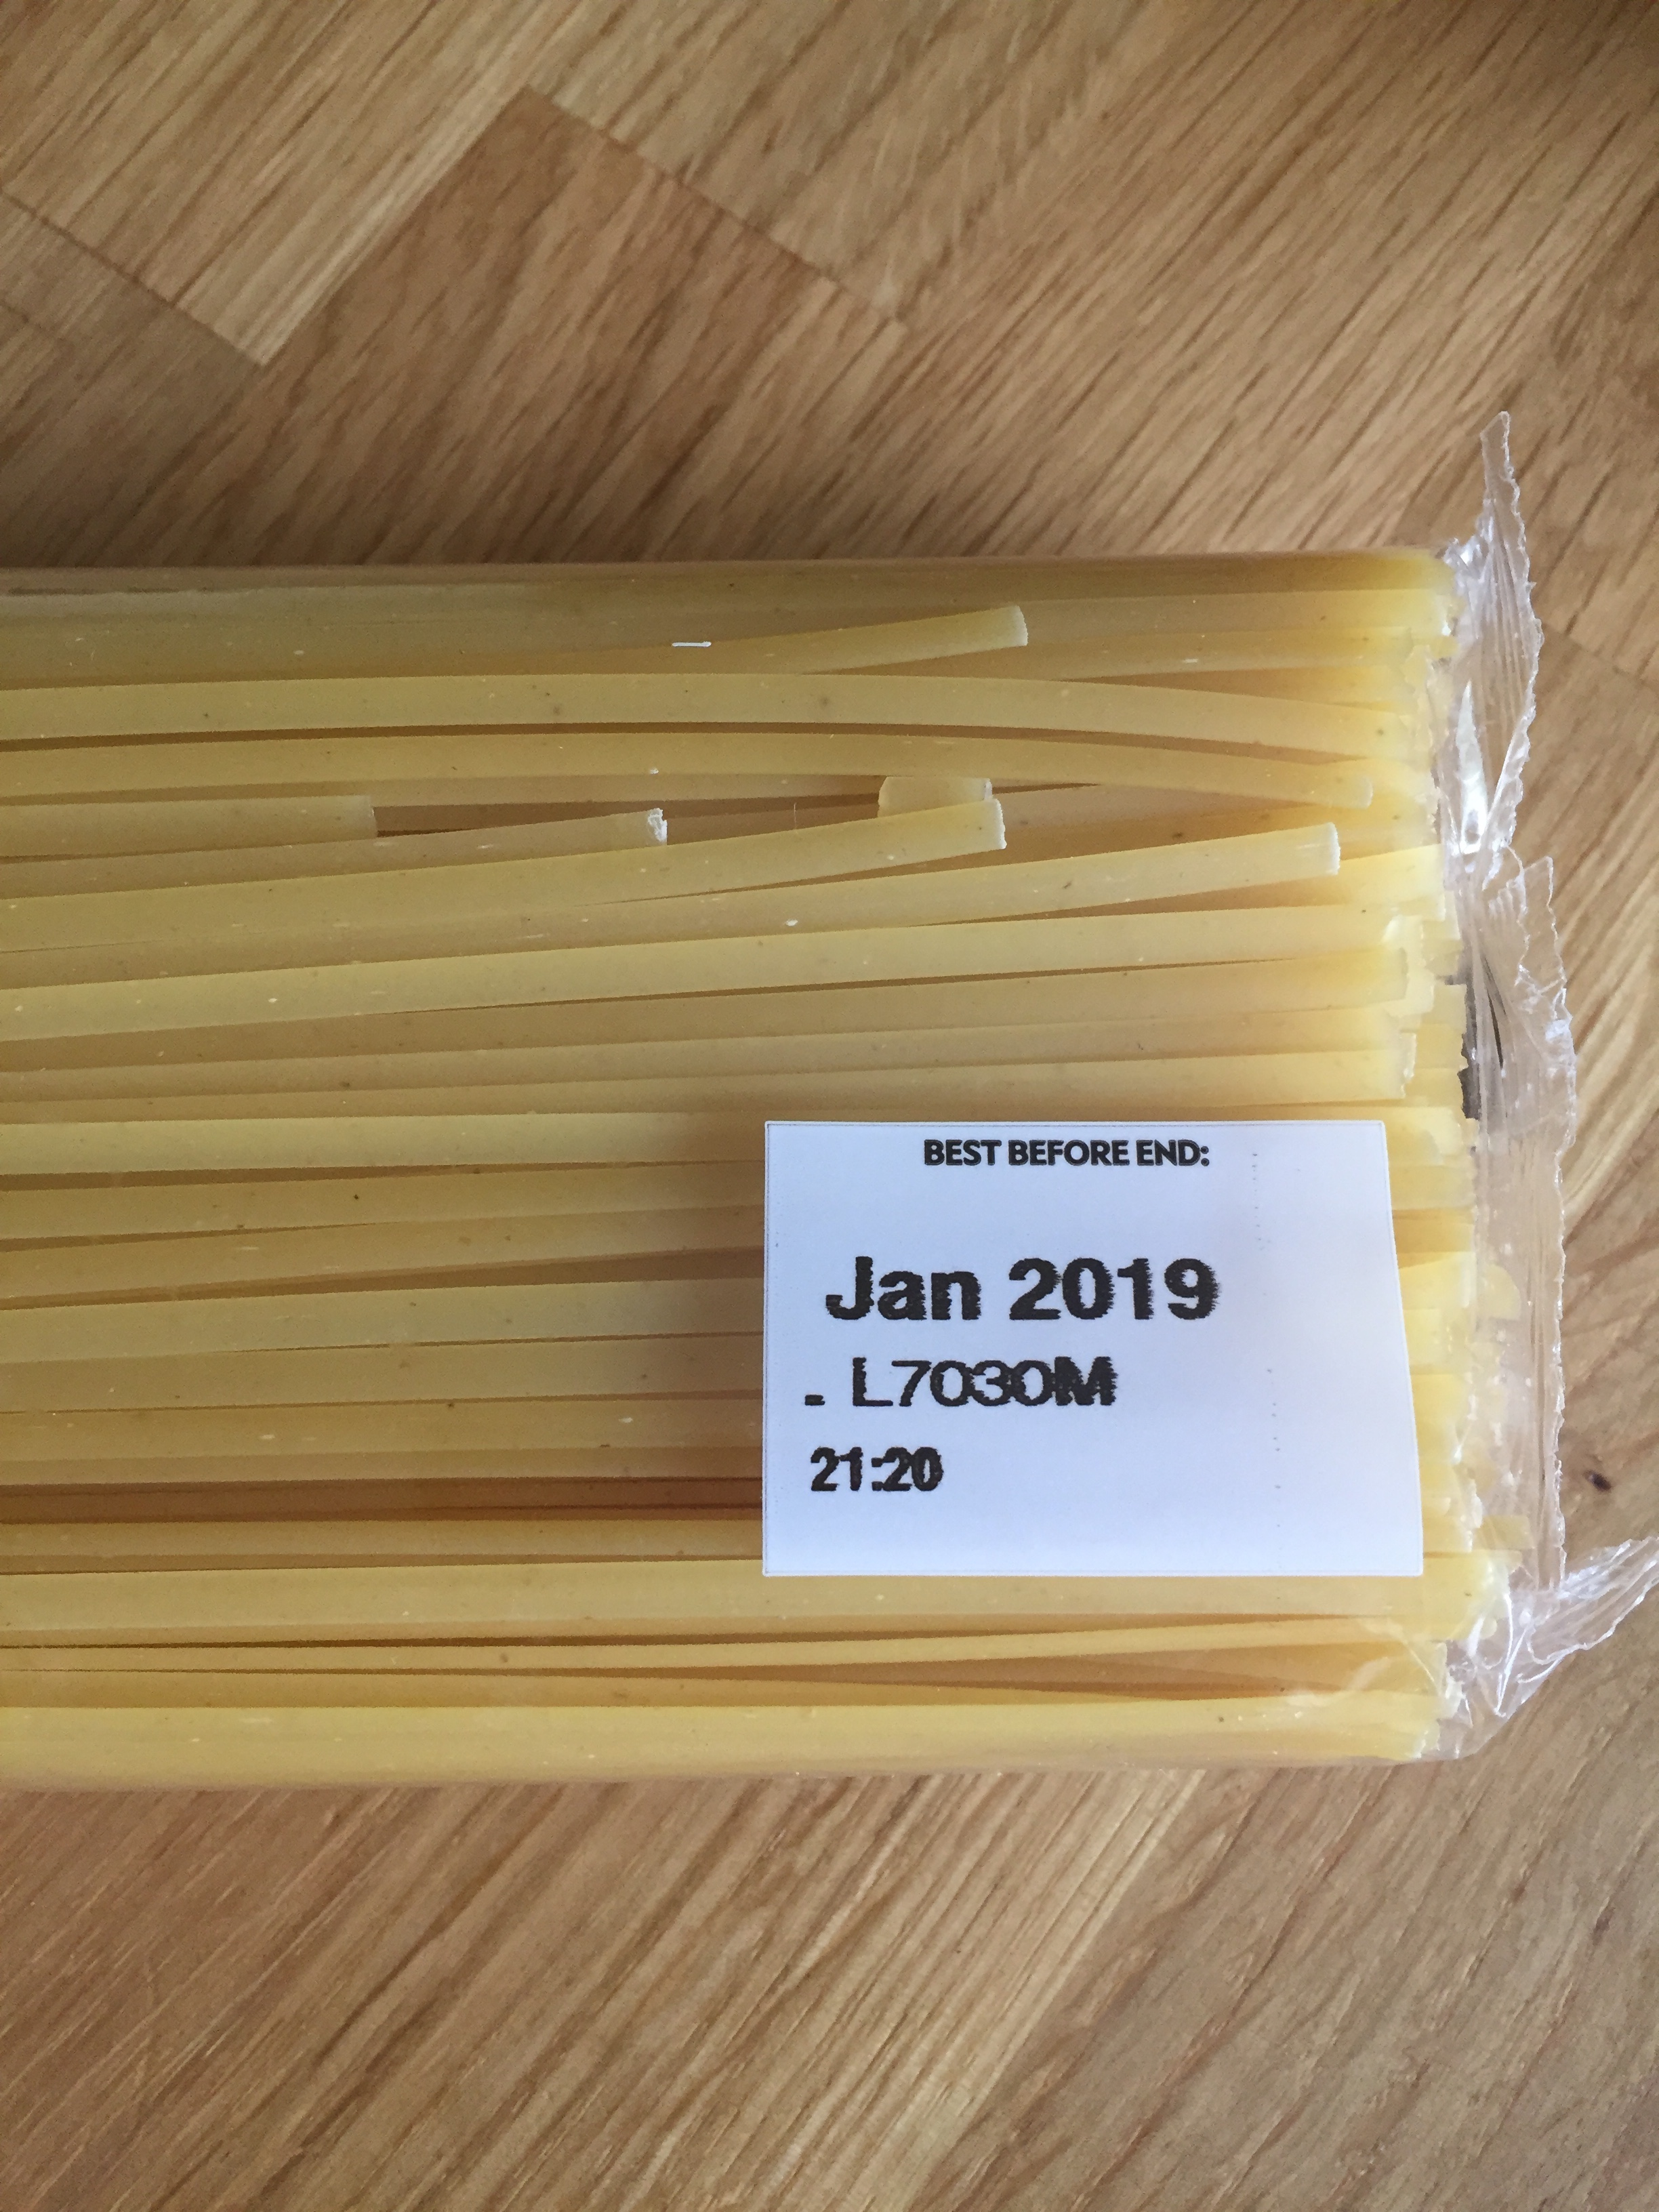 Pasta has a best-before not a use-by-date